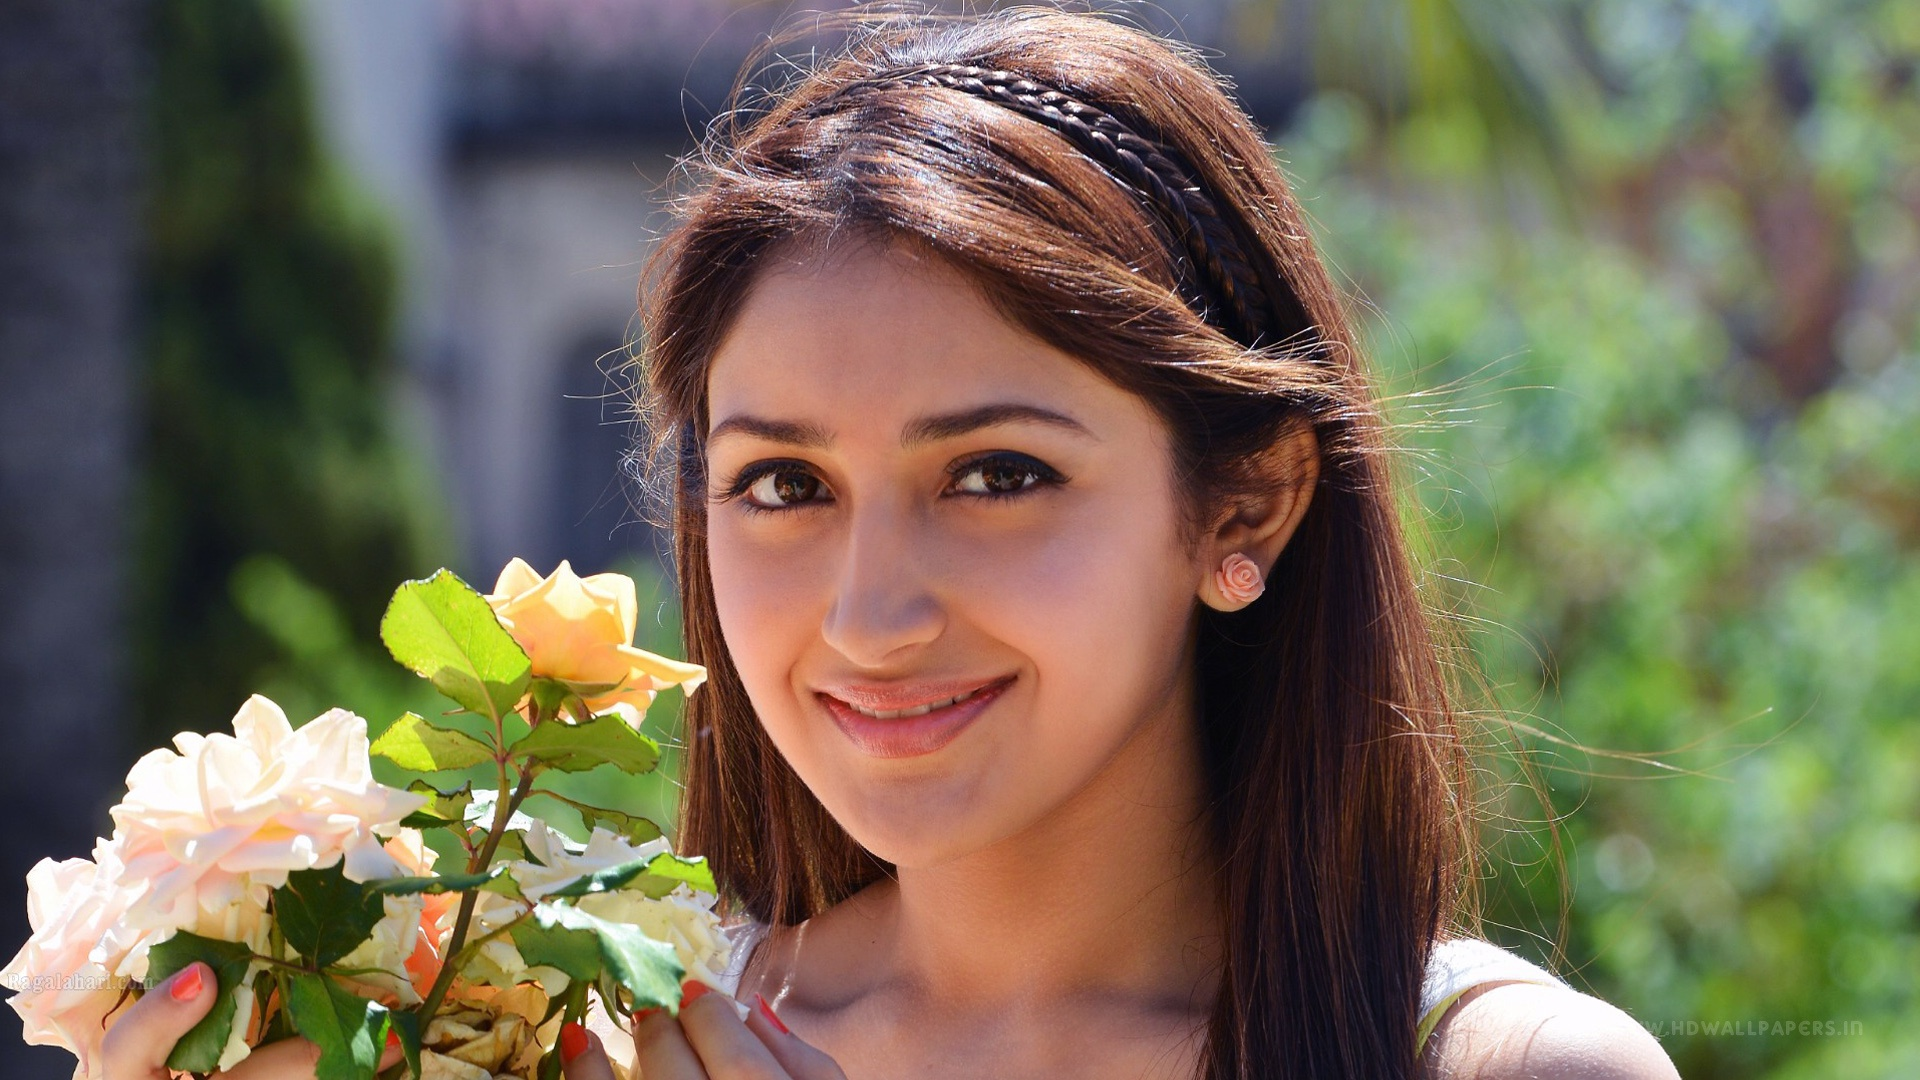 Sayesha Saigal Telugu Actress Wallpapers In Jpg Format For